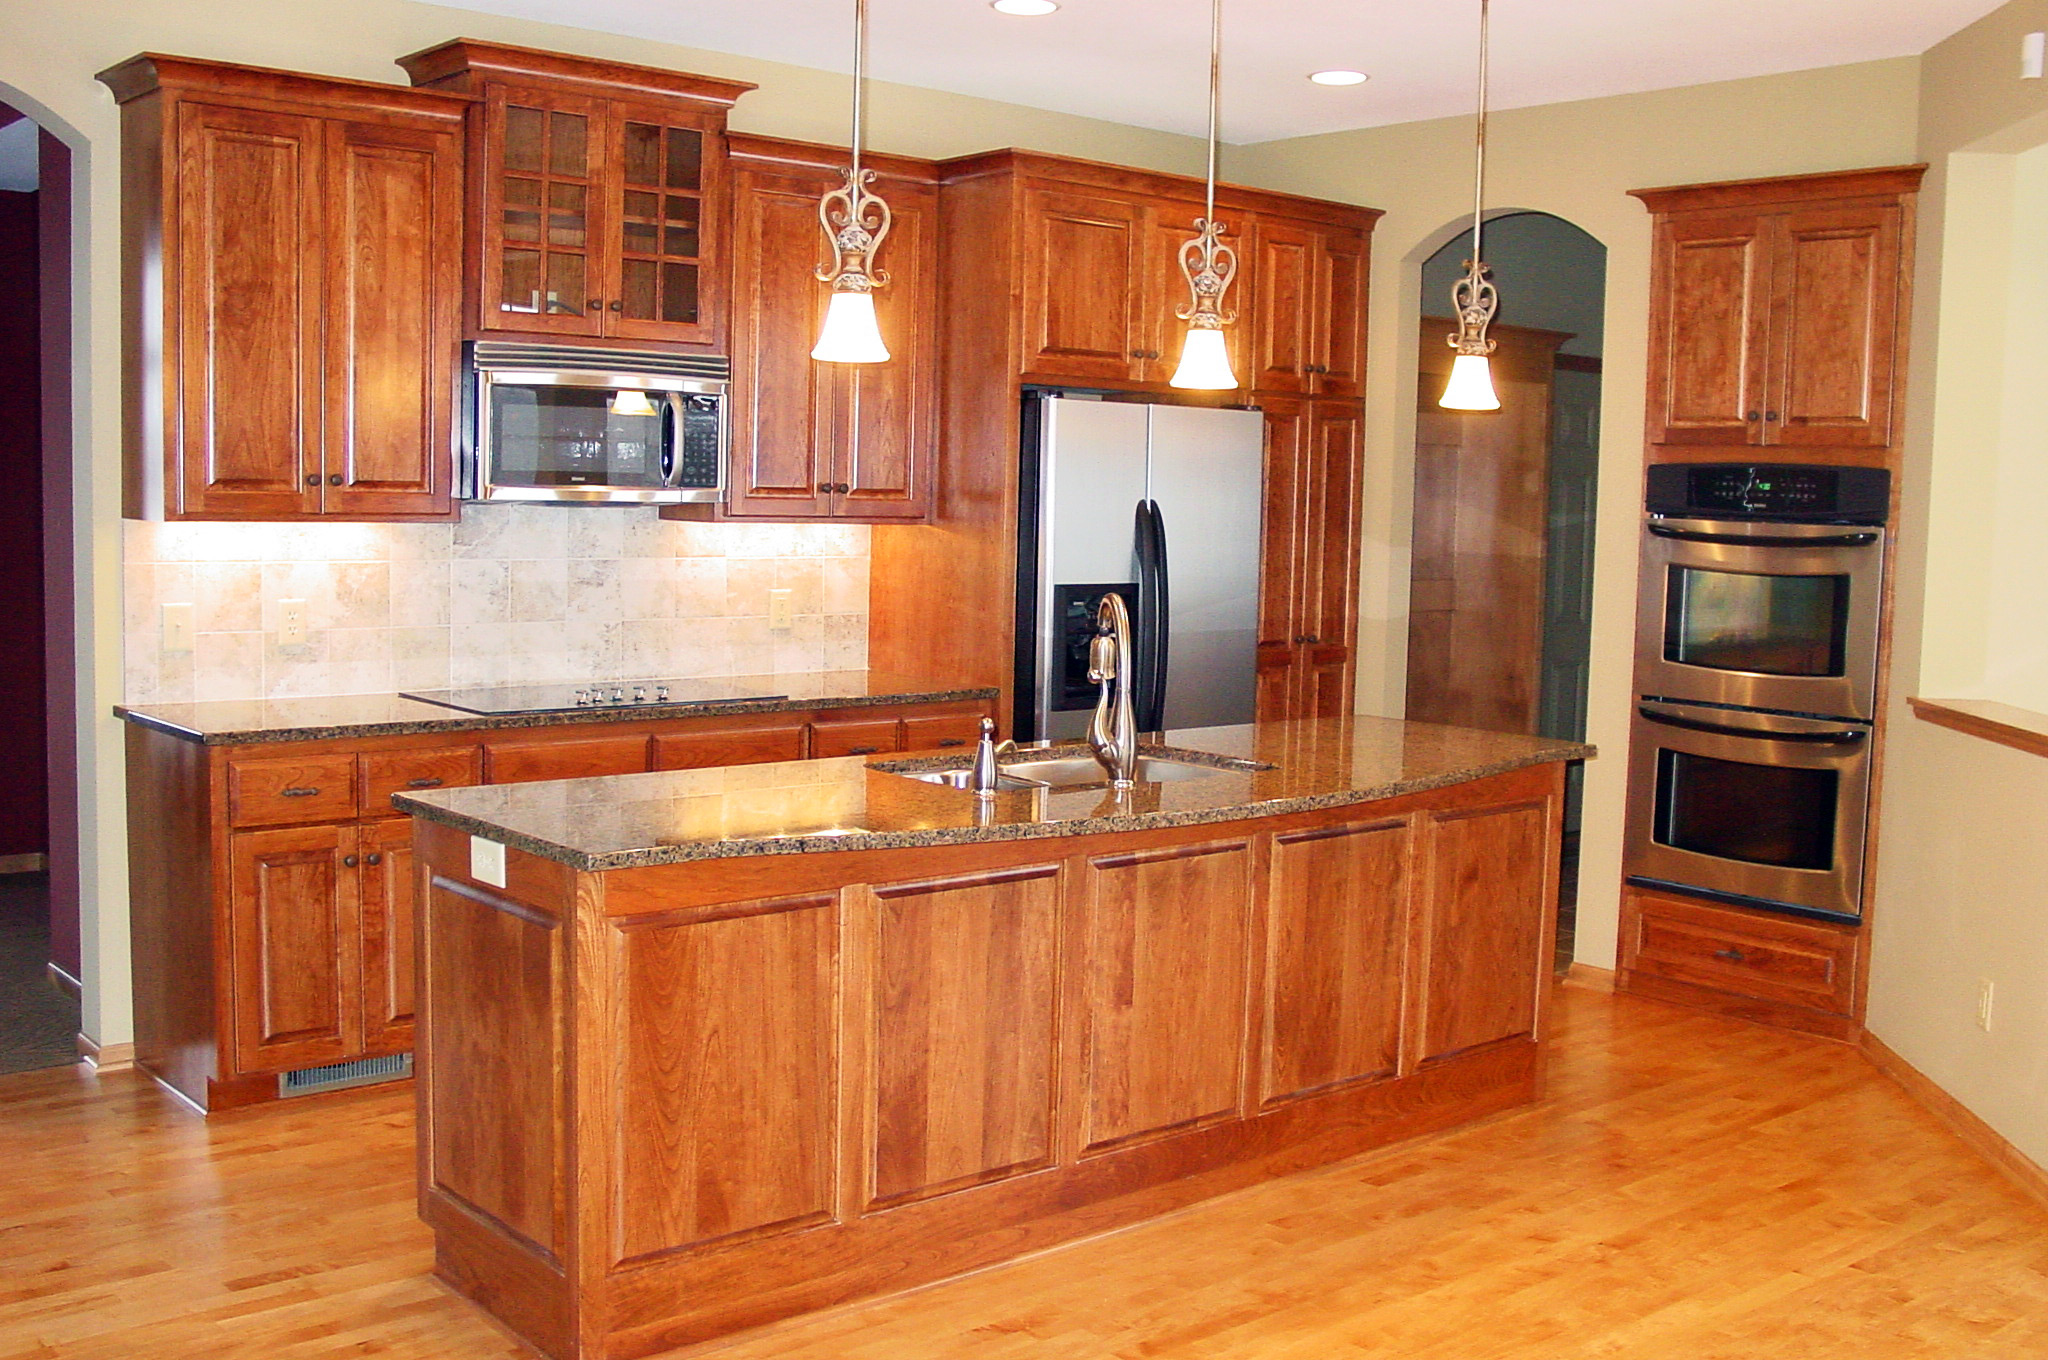 Design In Wood What To Do With Oak Cabinets: Maetzold Homes, Inc